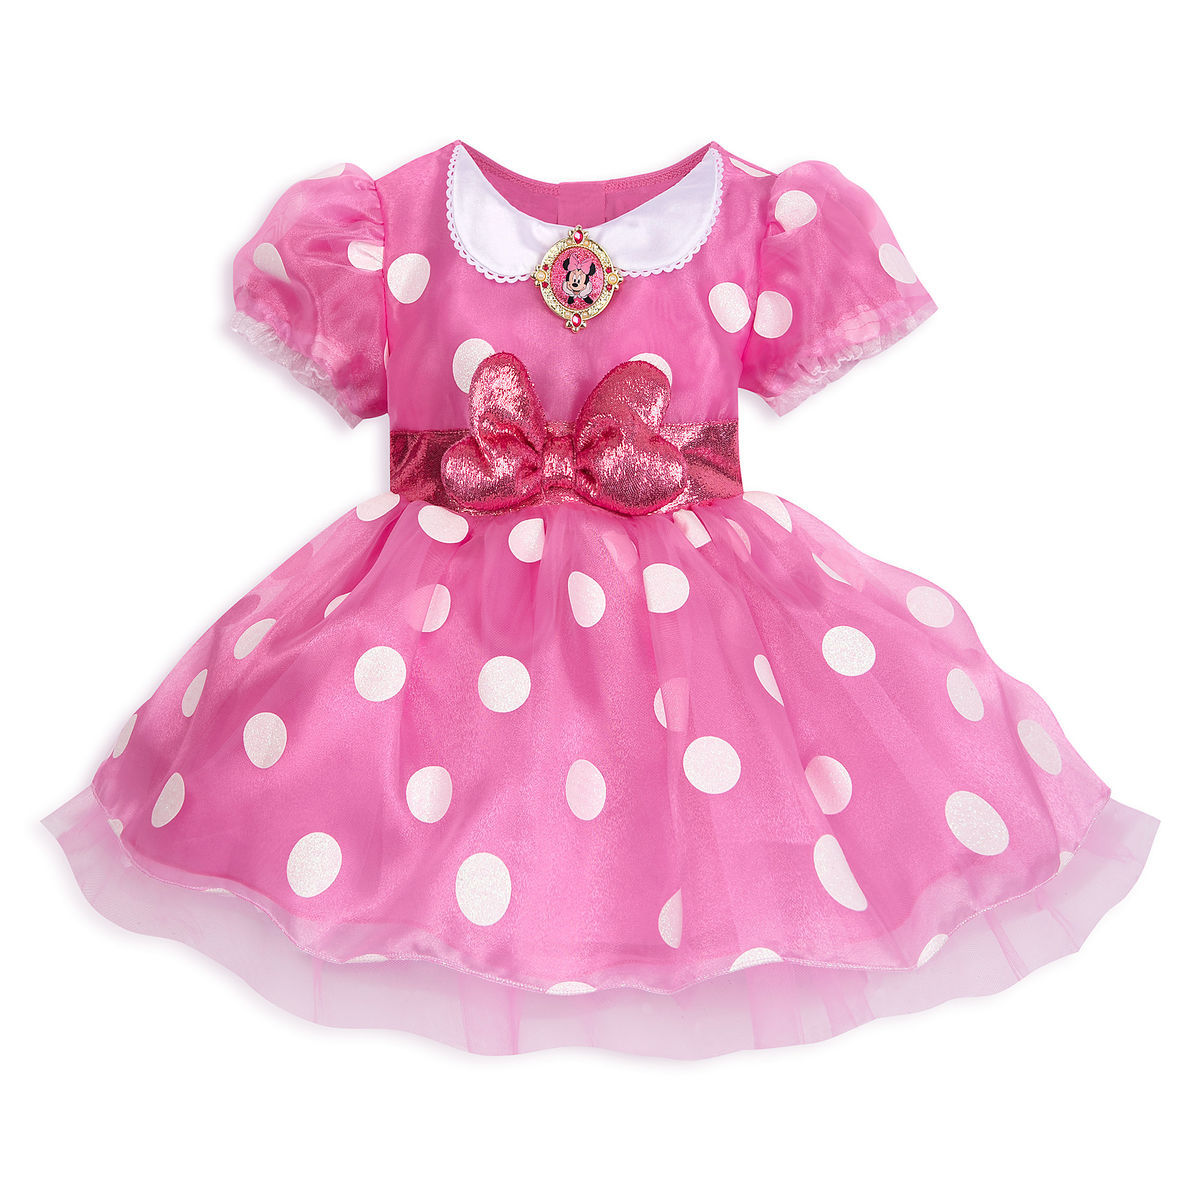 Minnie Mouse Pink Costume For Baby Shopdisney